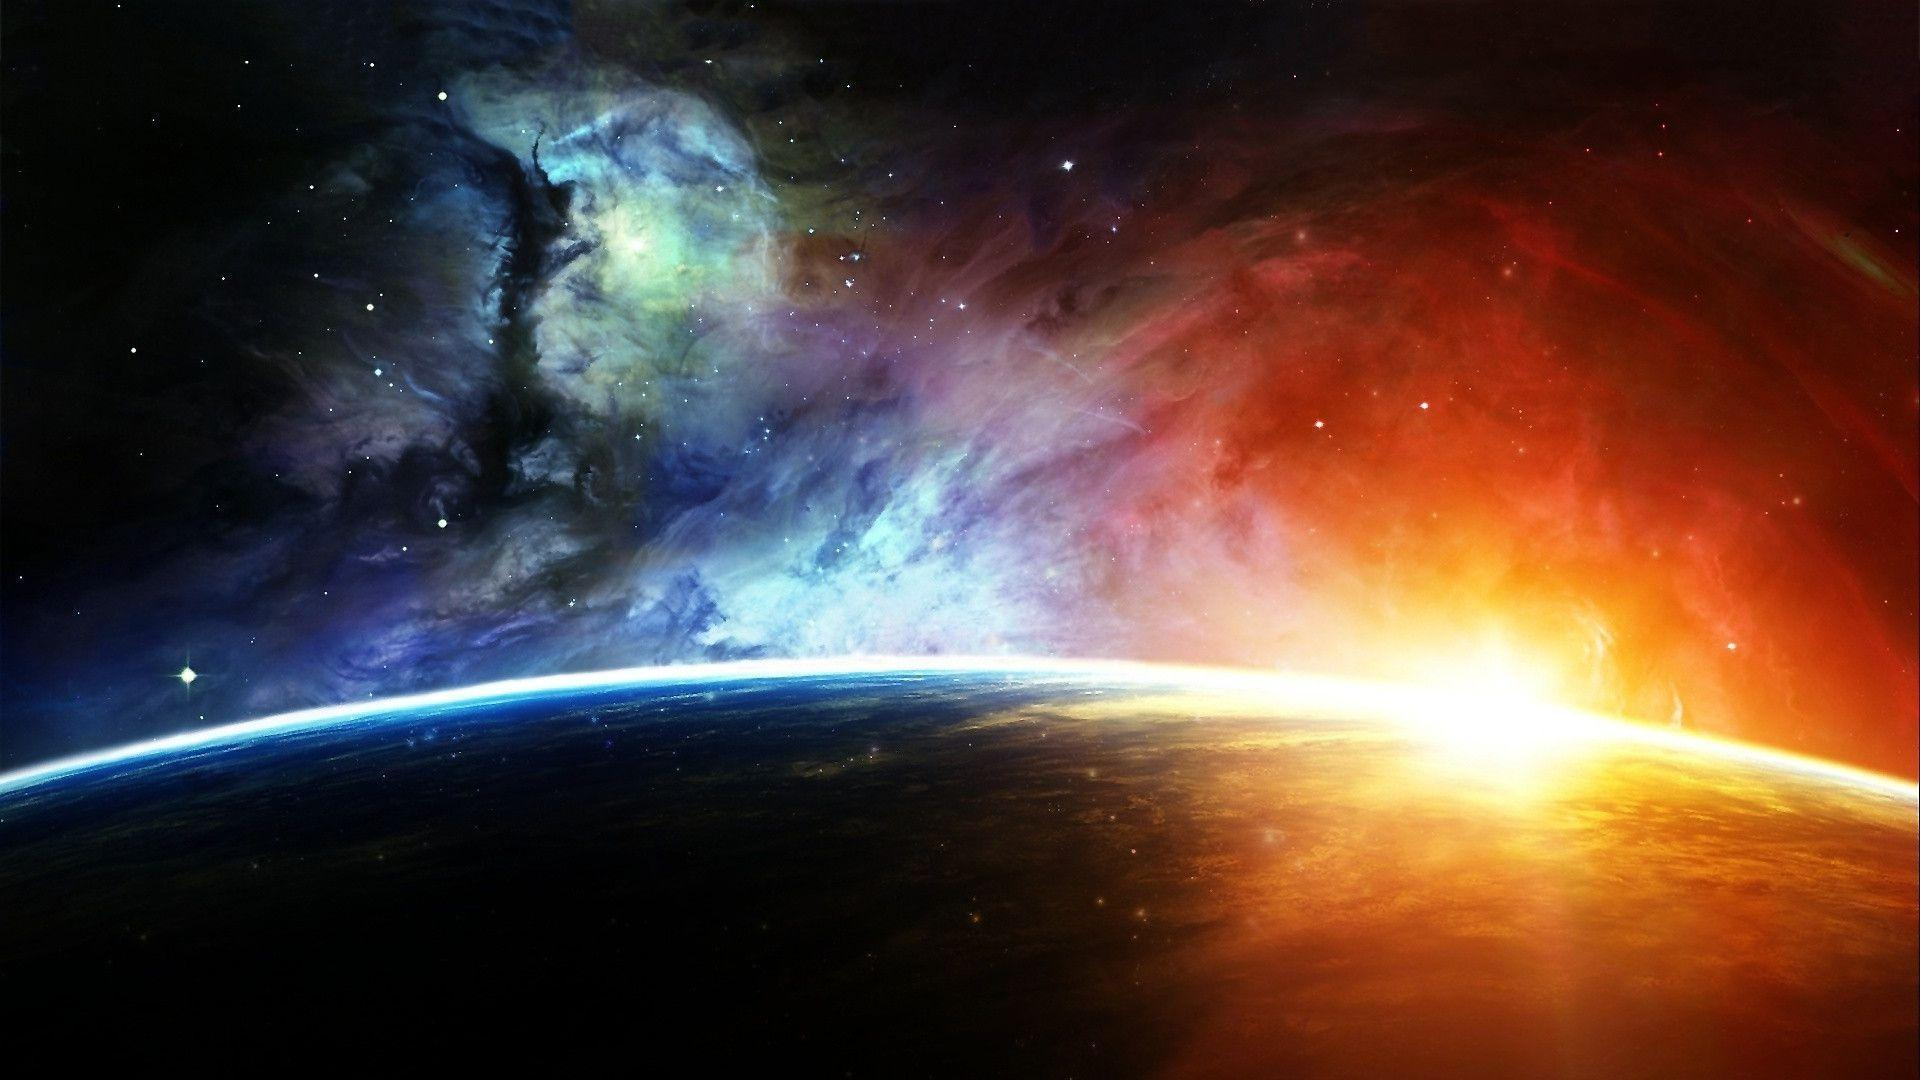 Space Wallpaper 1920X1080 Nebula Hd Background 8 HD Wallpapers